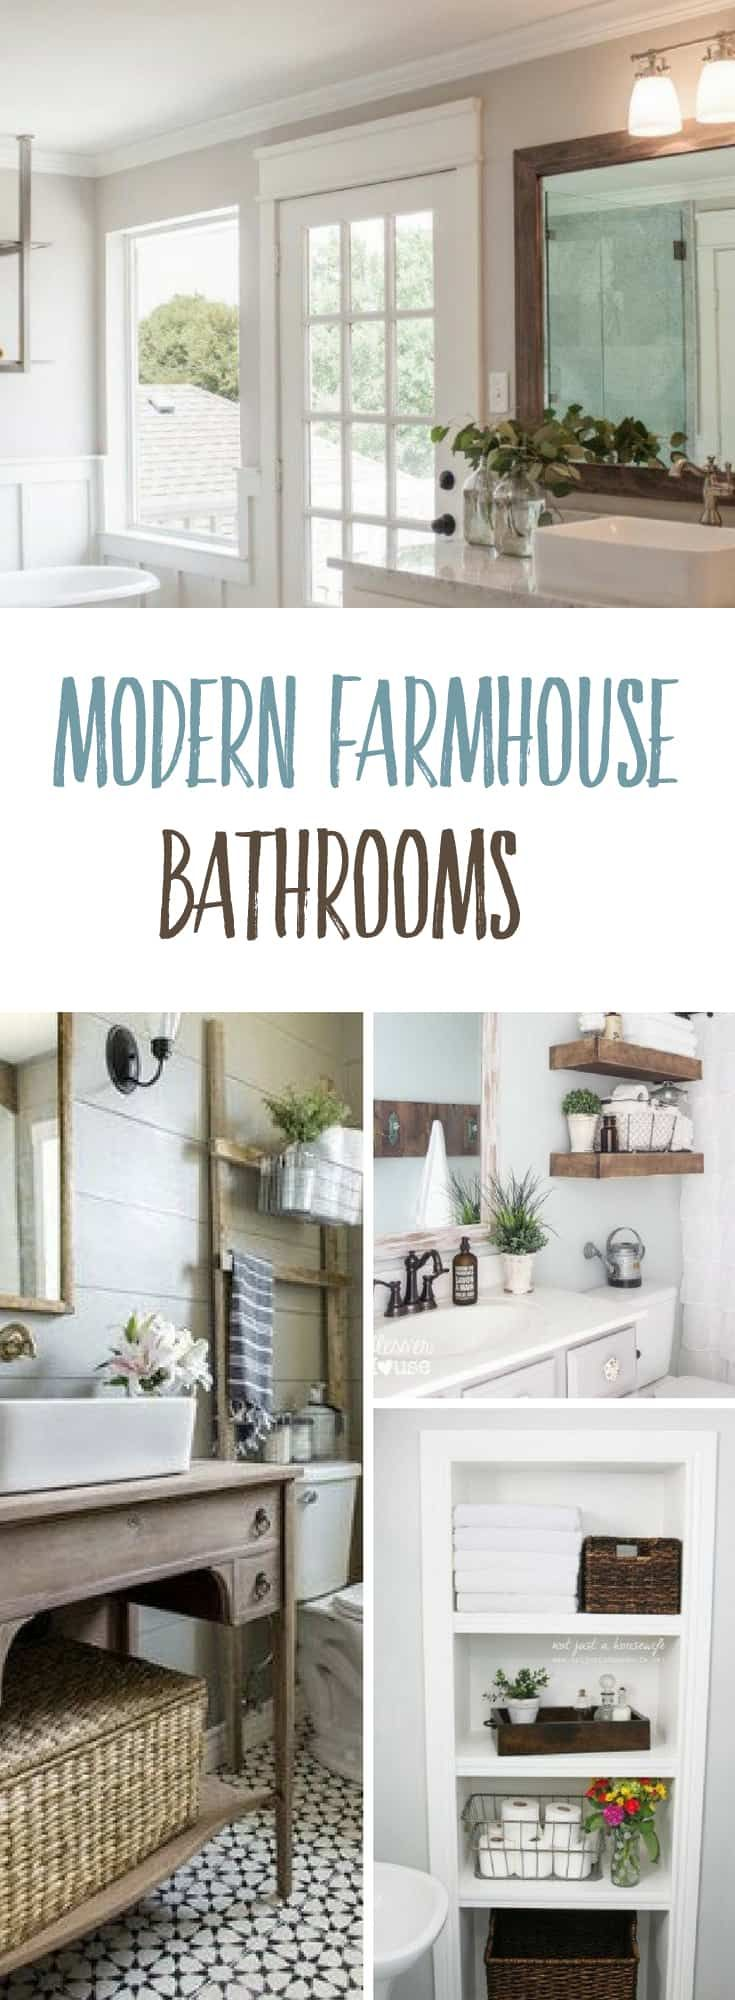 46 best Get the Look & Mood Boards images on Pinterest | Mood boards ...